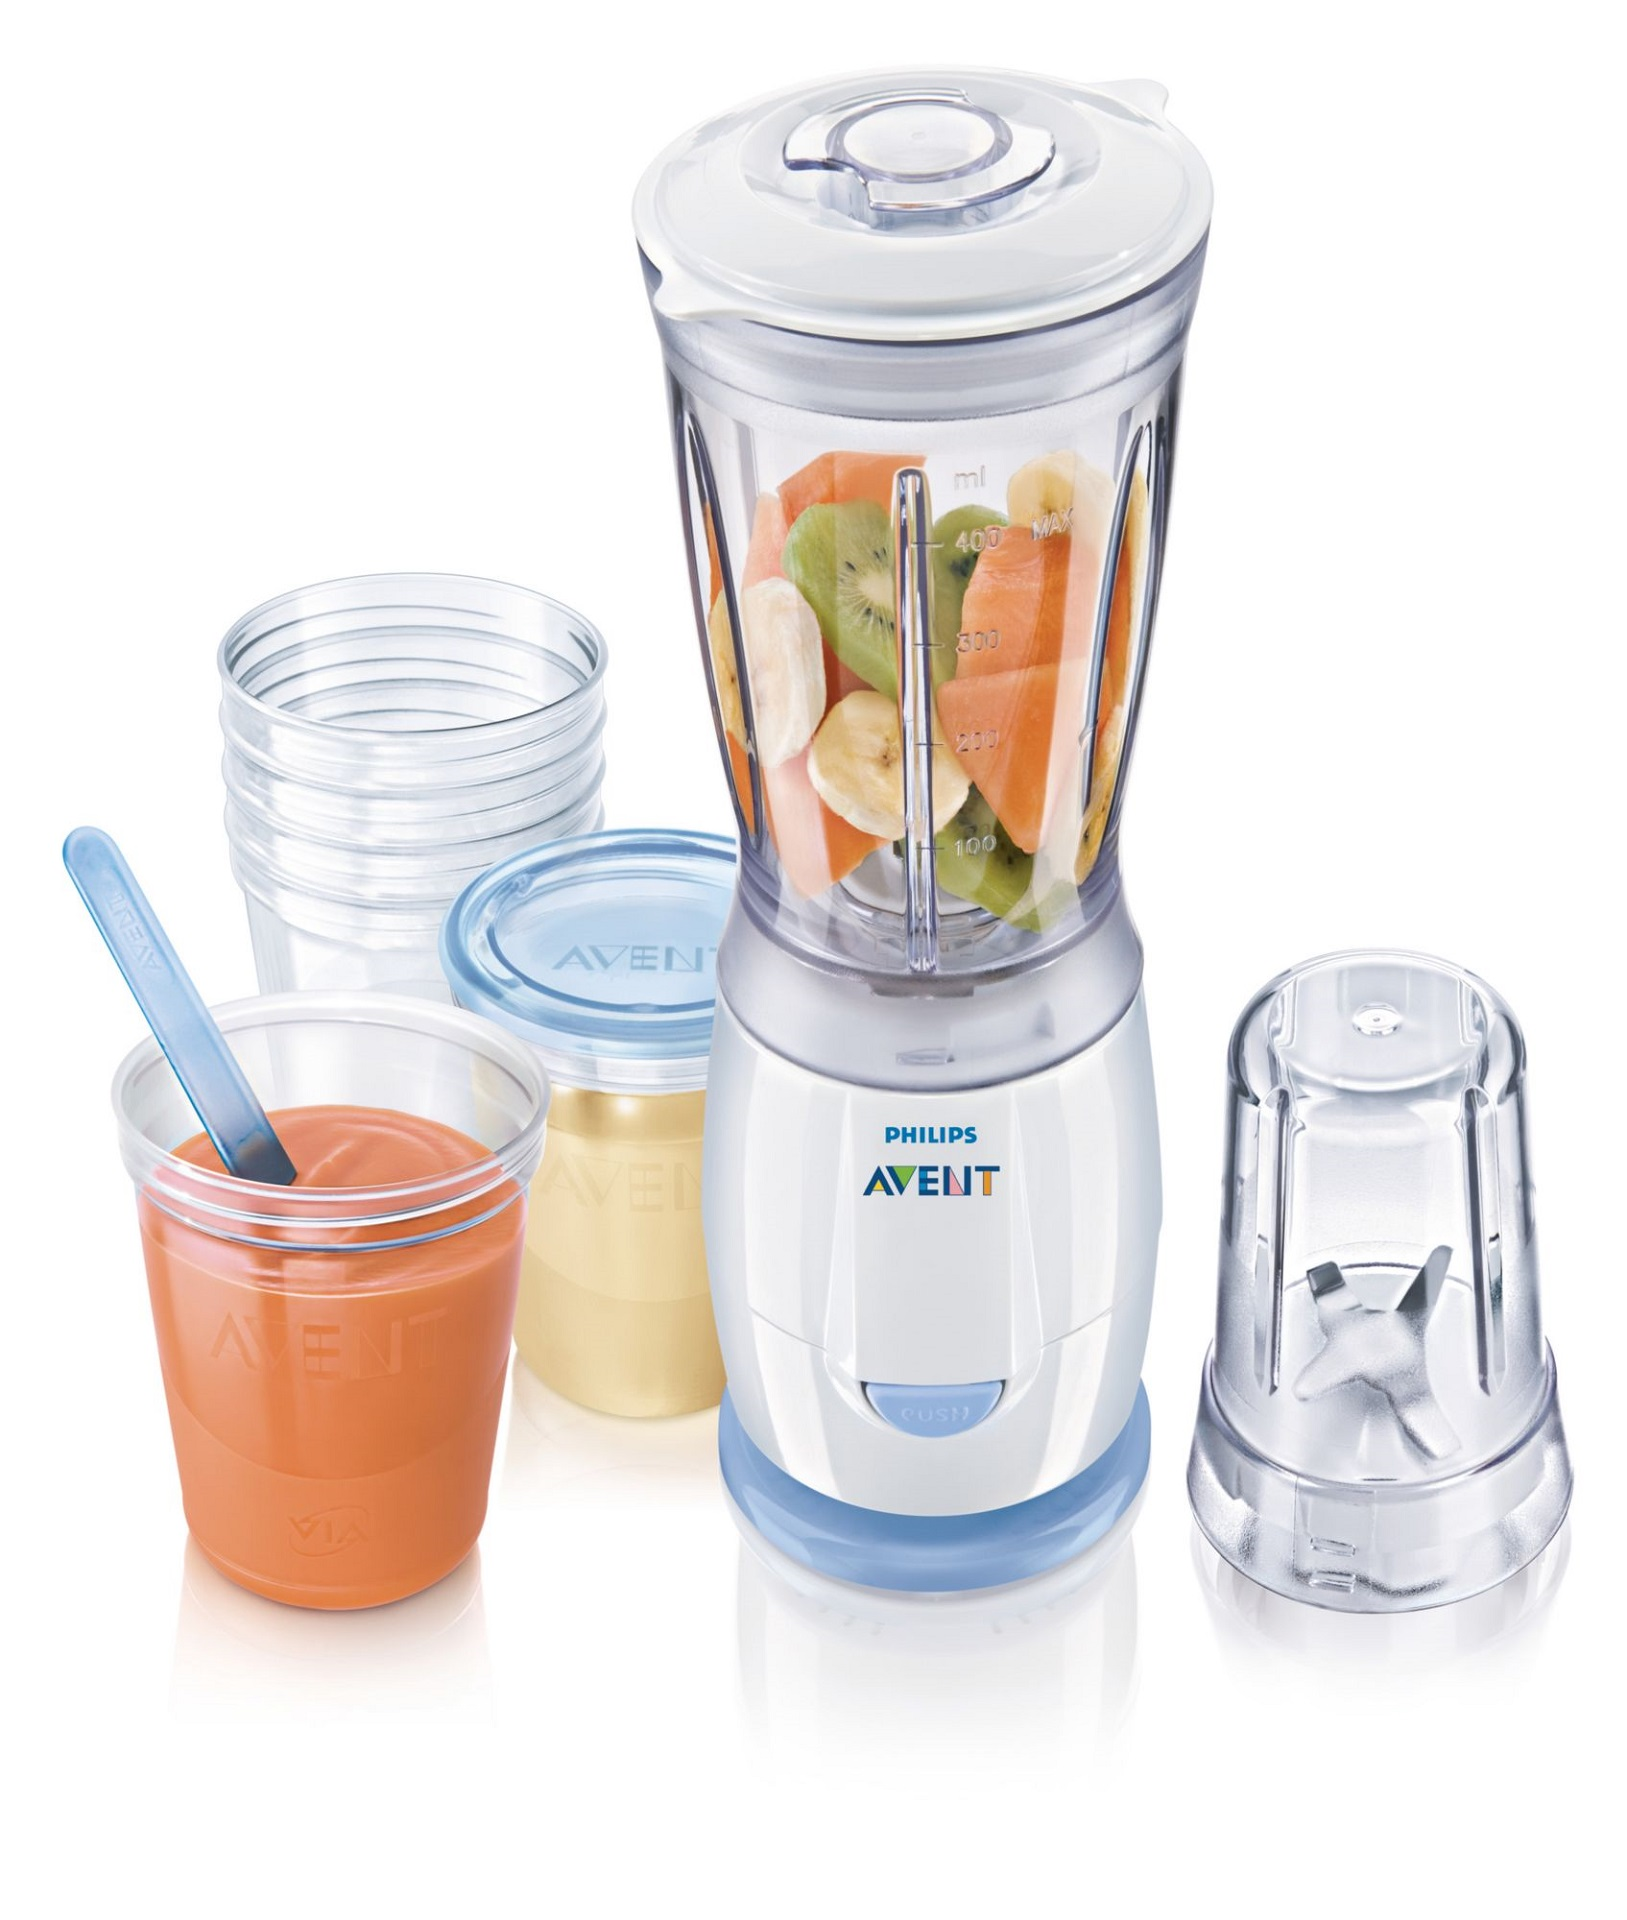 AVENT starter-set for solid food (mini blender) 2015 - large image 1 ...  sc 1 st  Baby products online store - worldwide shipping & AVENT starter-set for solid food (mini blender) 2015 - Buy at ...